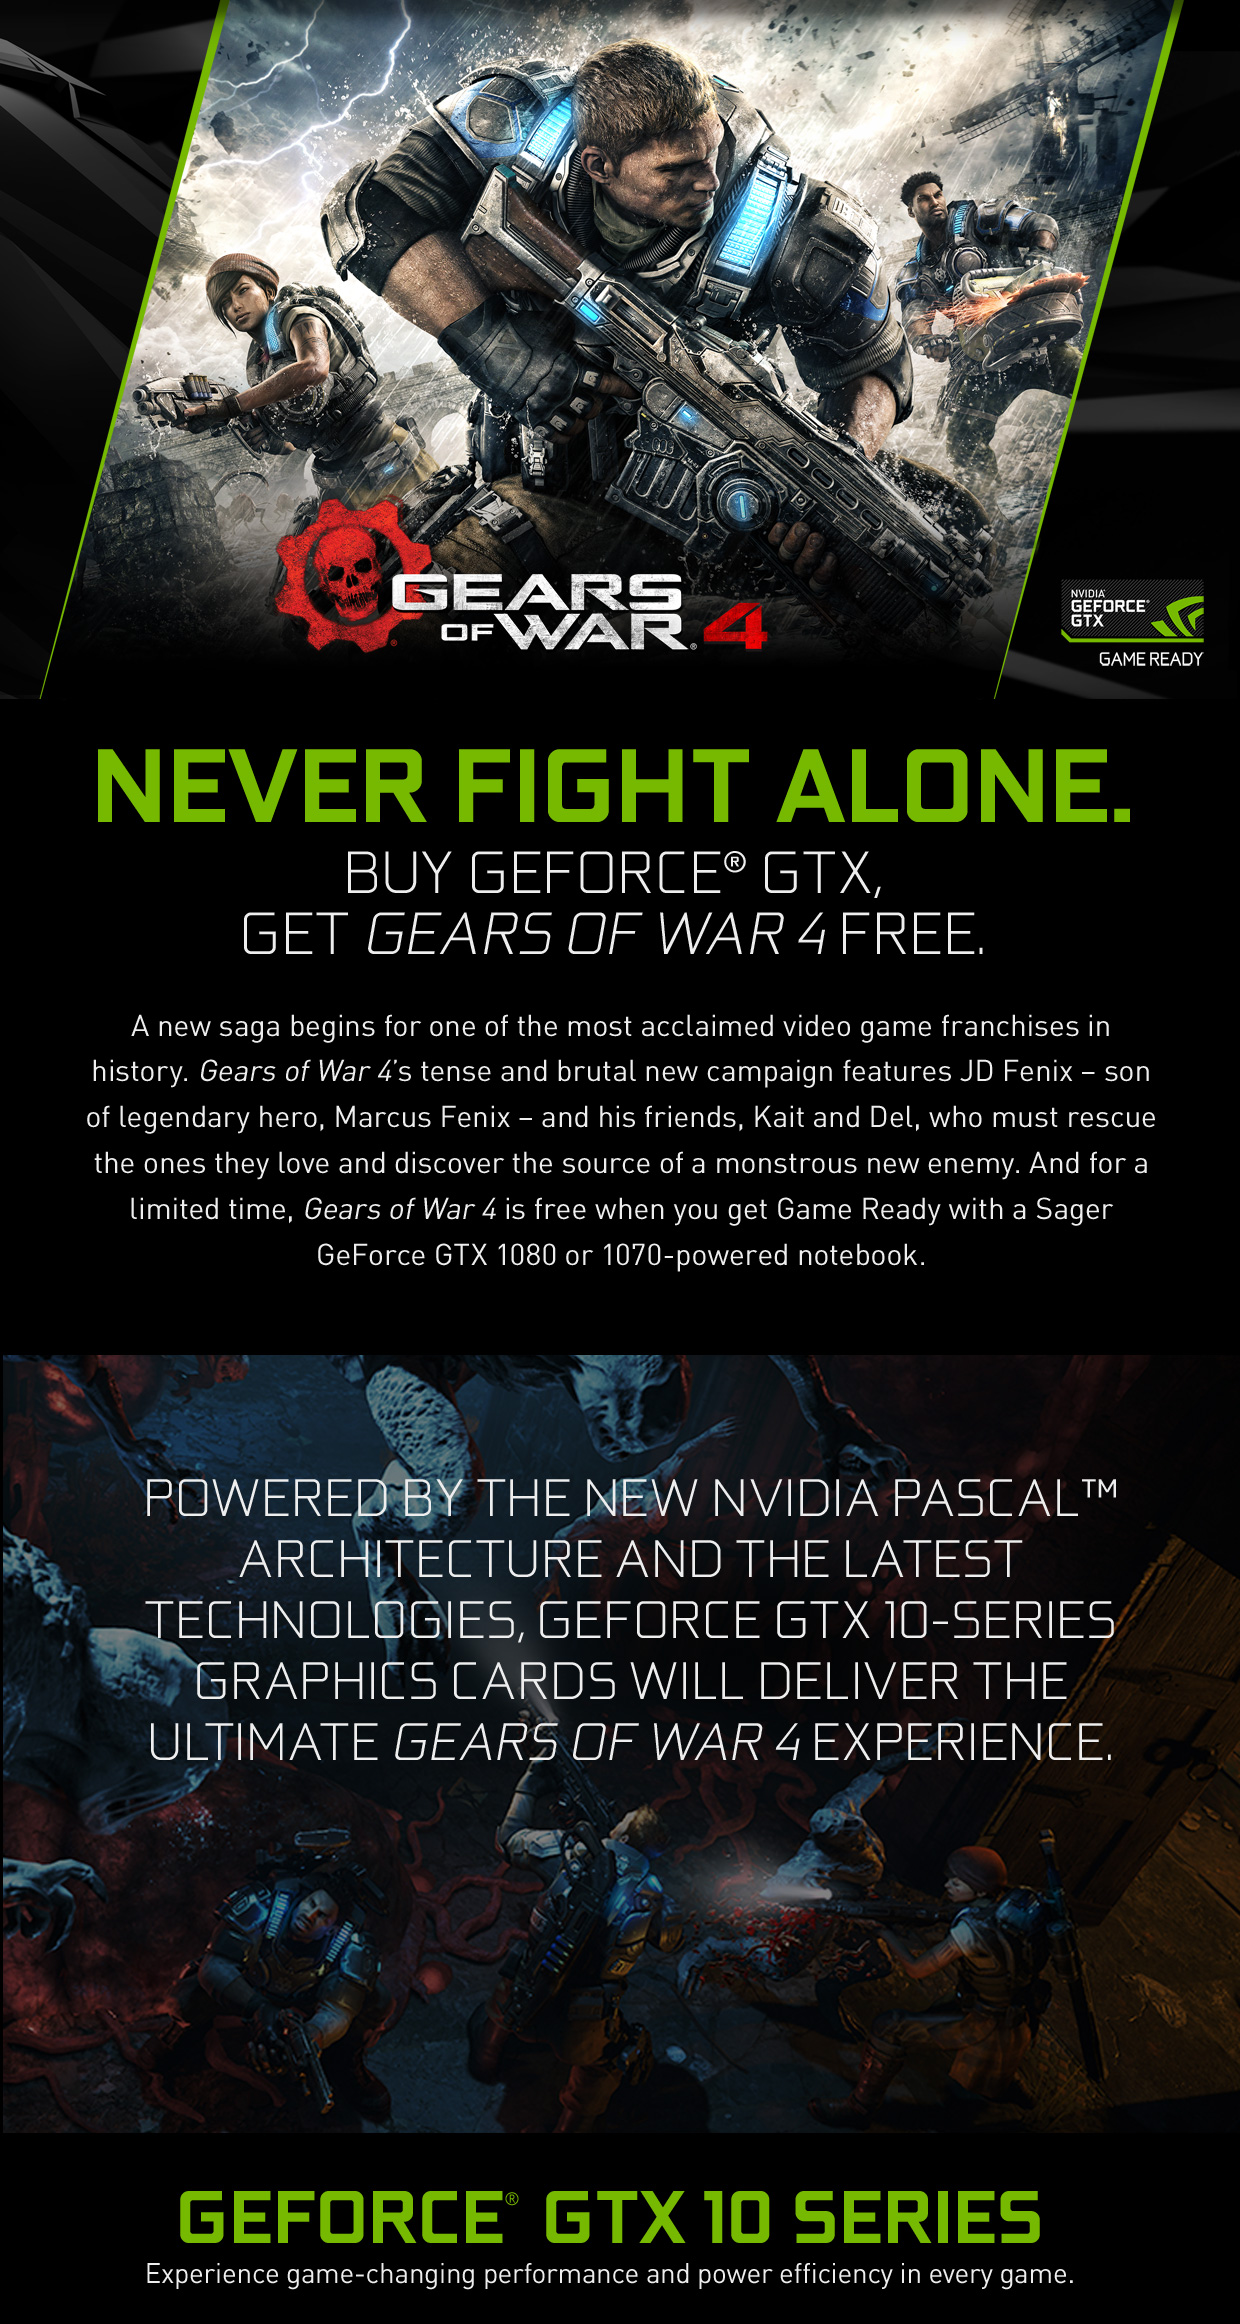 Buy GeForce GTX 1080 or 1070 Powered Sager Notebook, Get Gear Of War 4 Free!